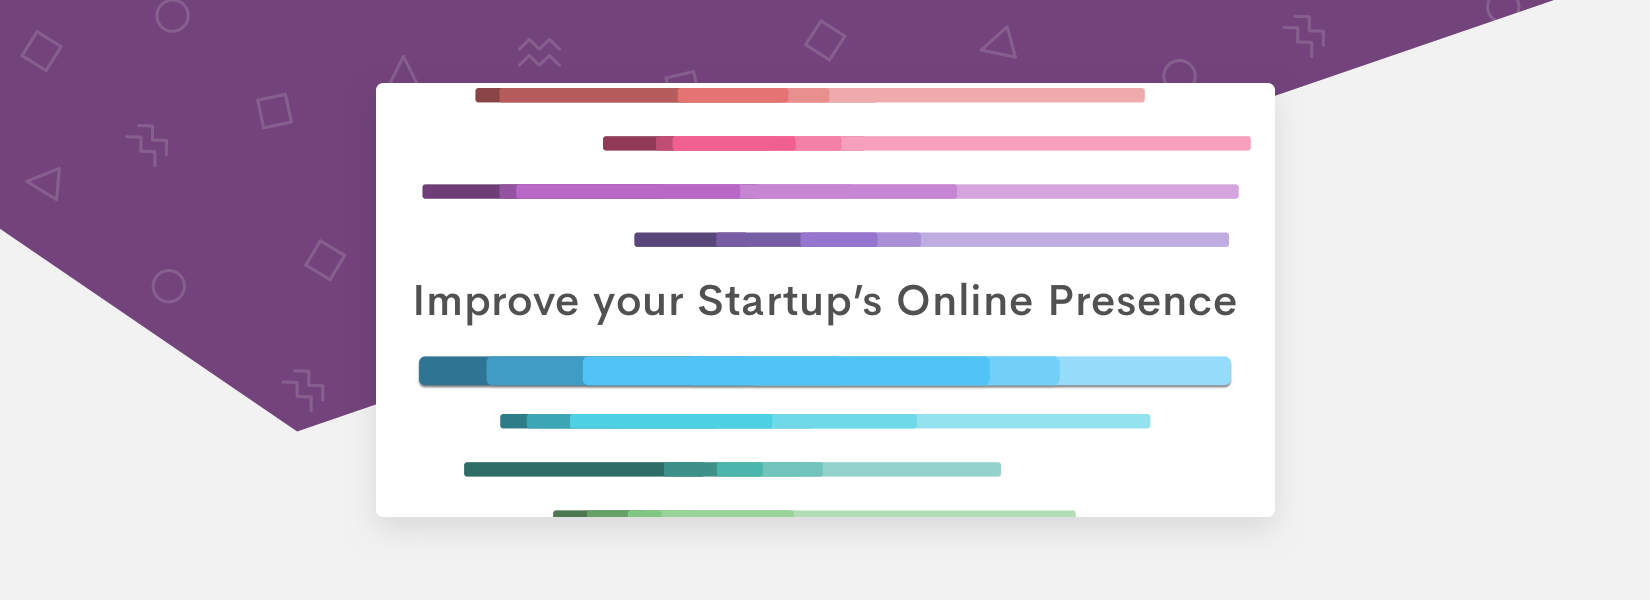 Give your startup the online presence it deserves